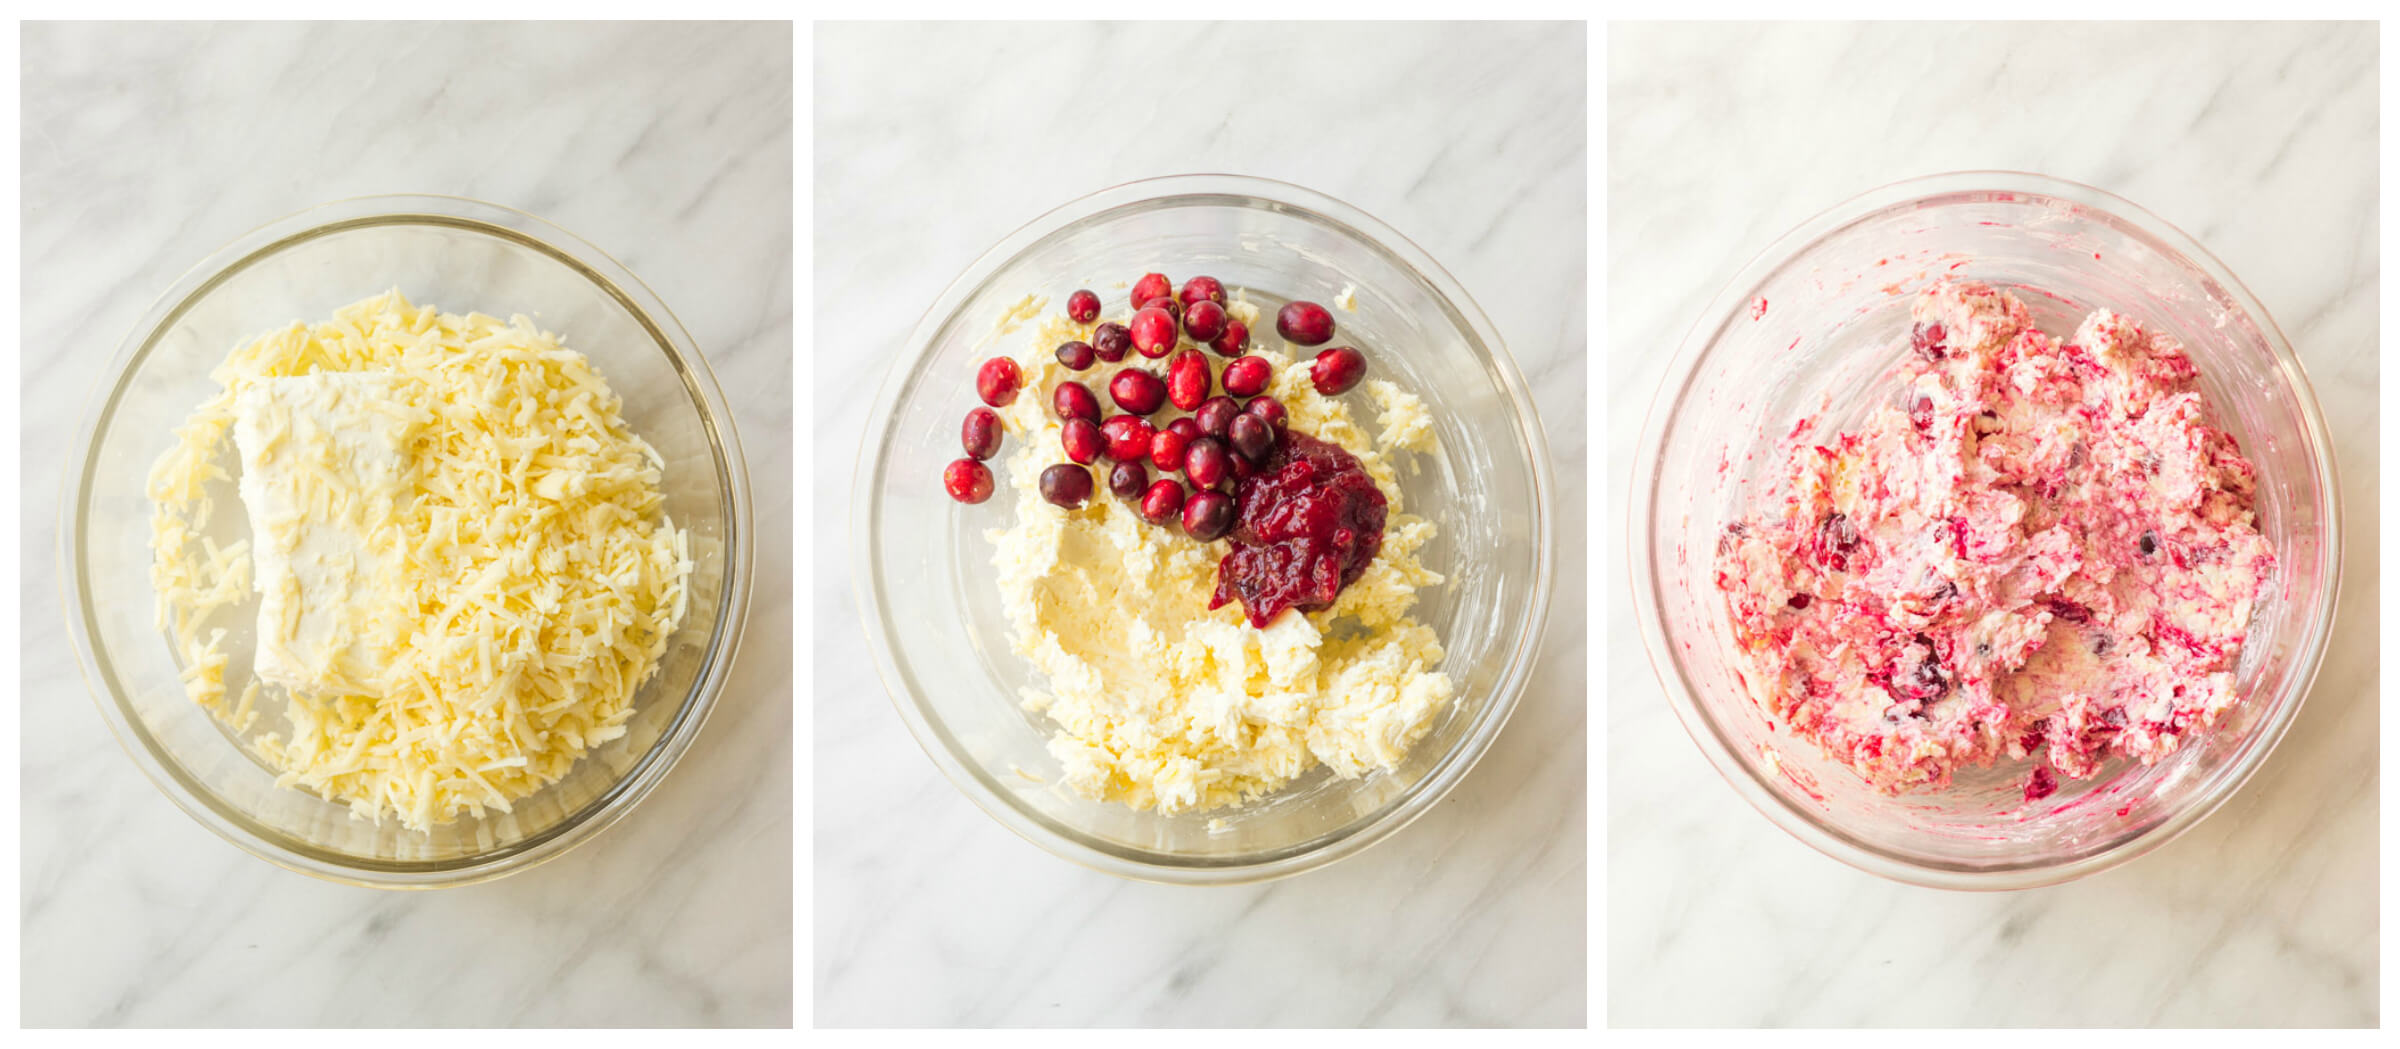 Step by step instruction on how to make cranberry dip